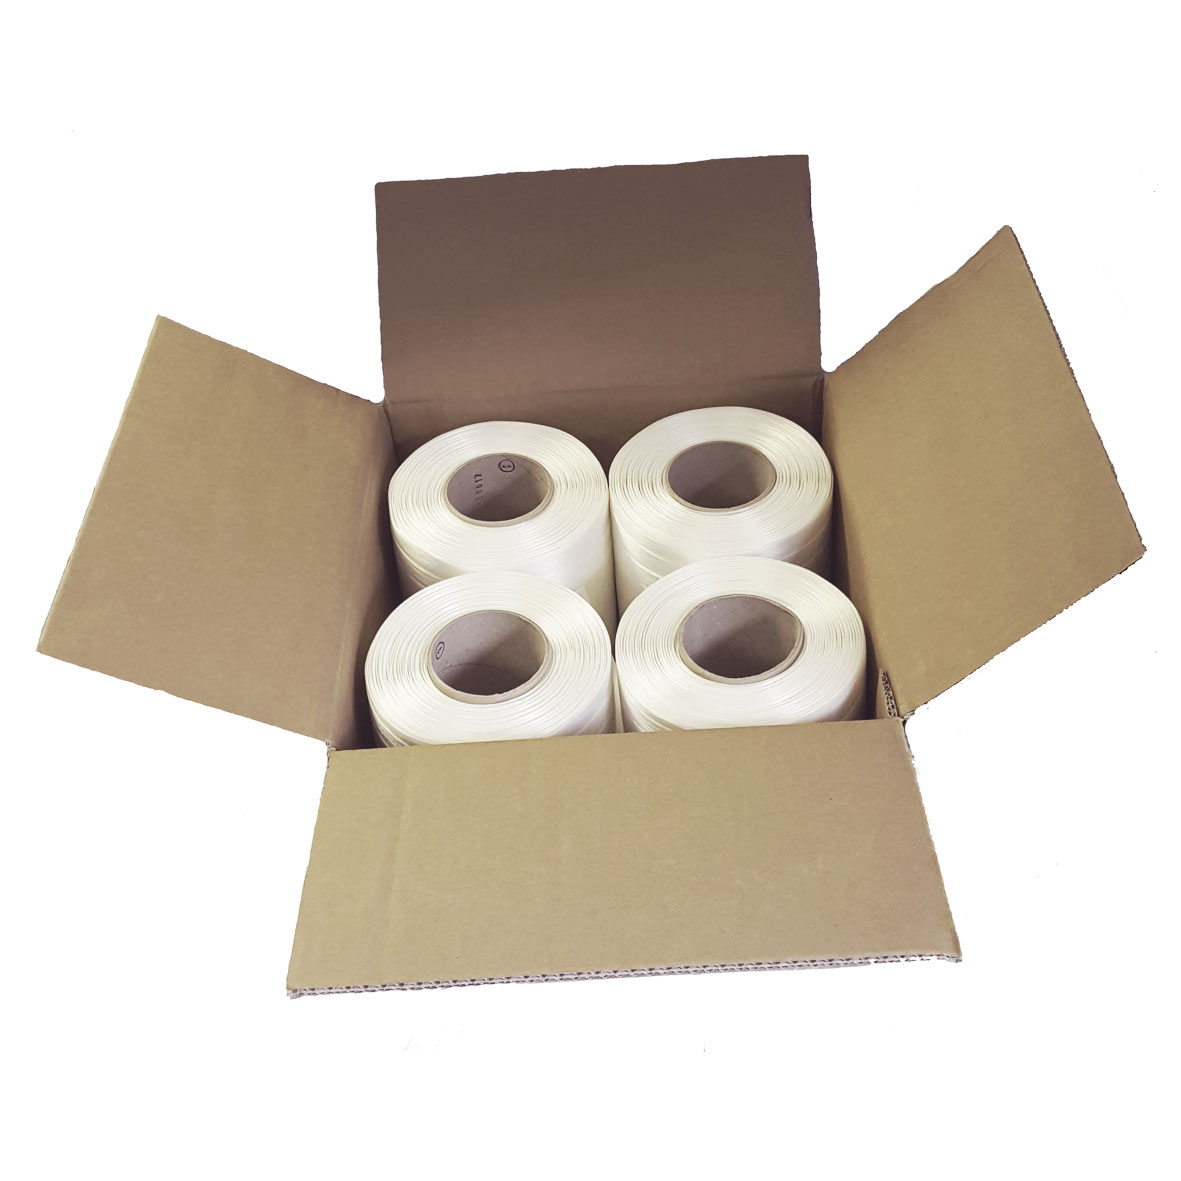 16mm wide baler banding - box contains 4 x 250 metre long rolls in white